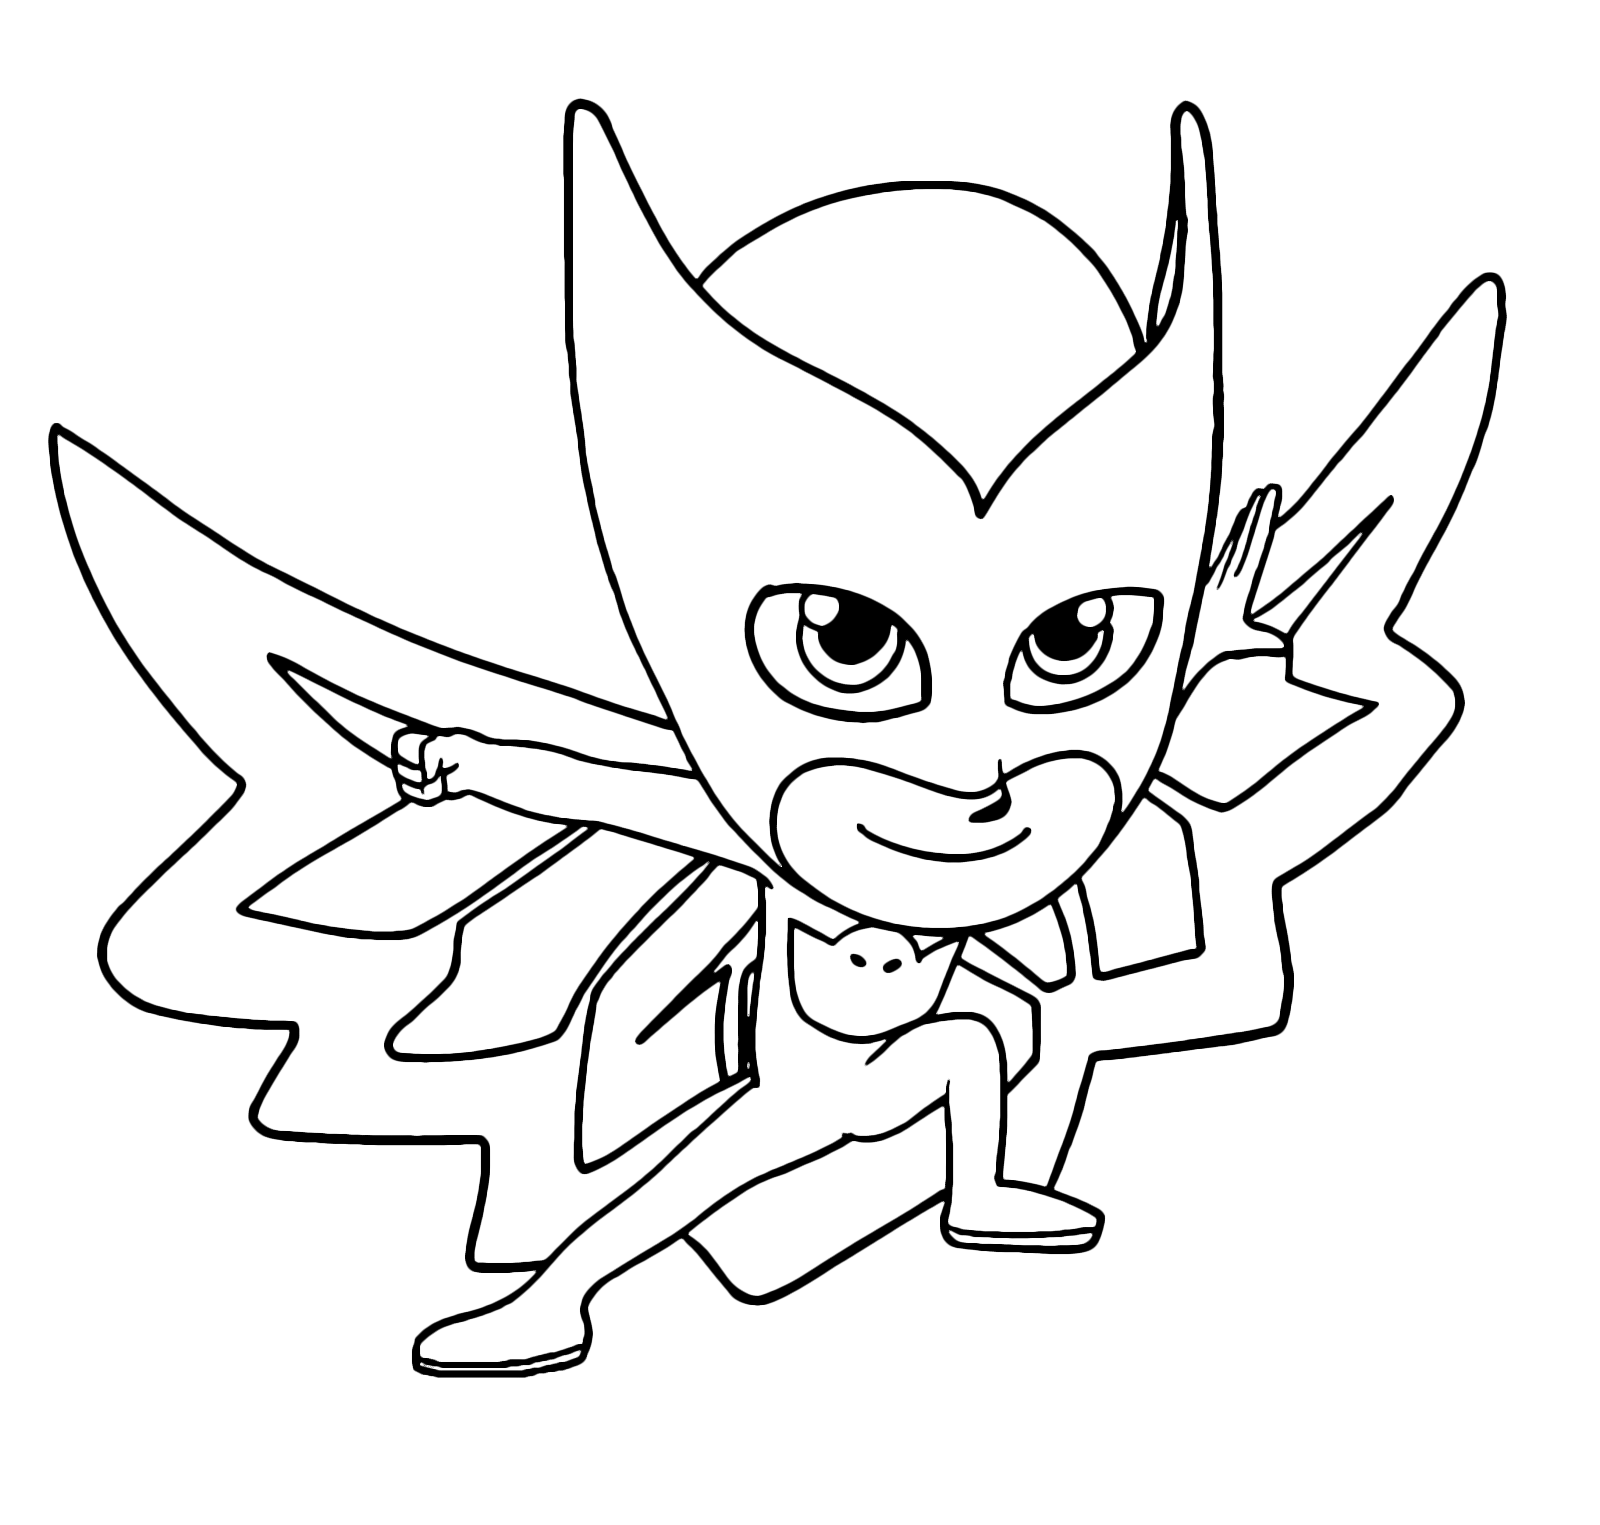 Pj masks super pigiamini gufetta pronta a sconfiggere for Disegni da colorare super pigiamini